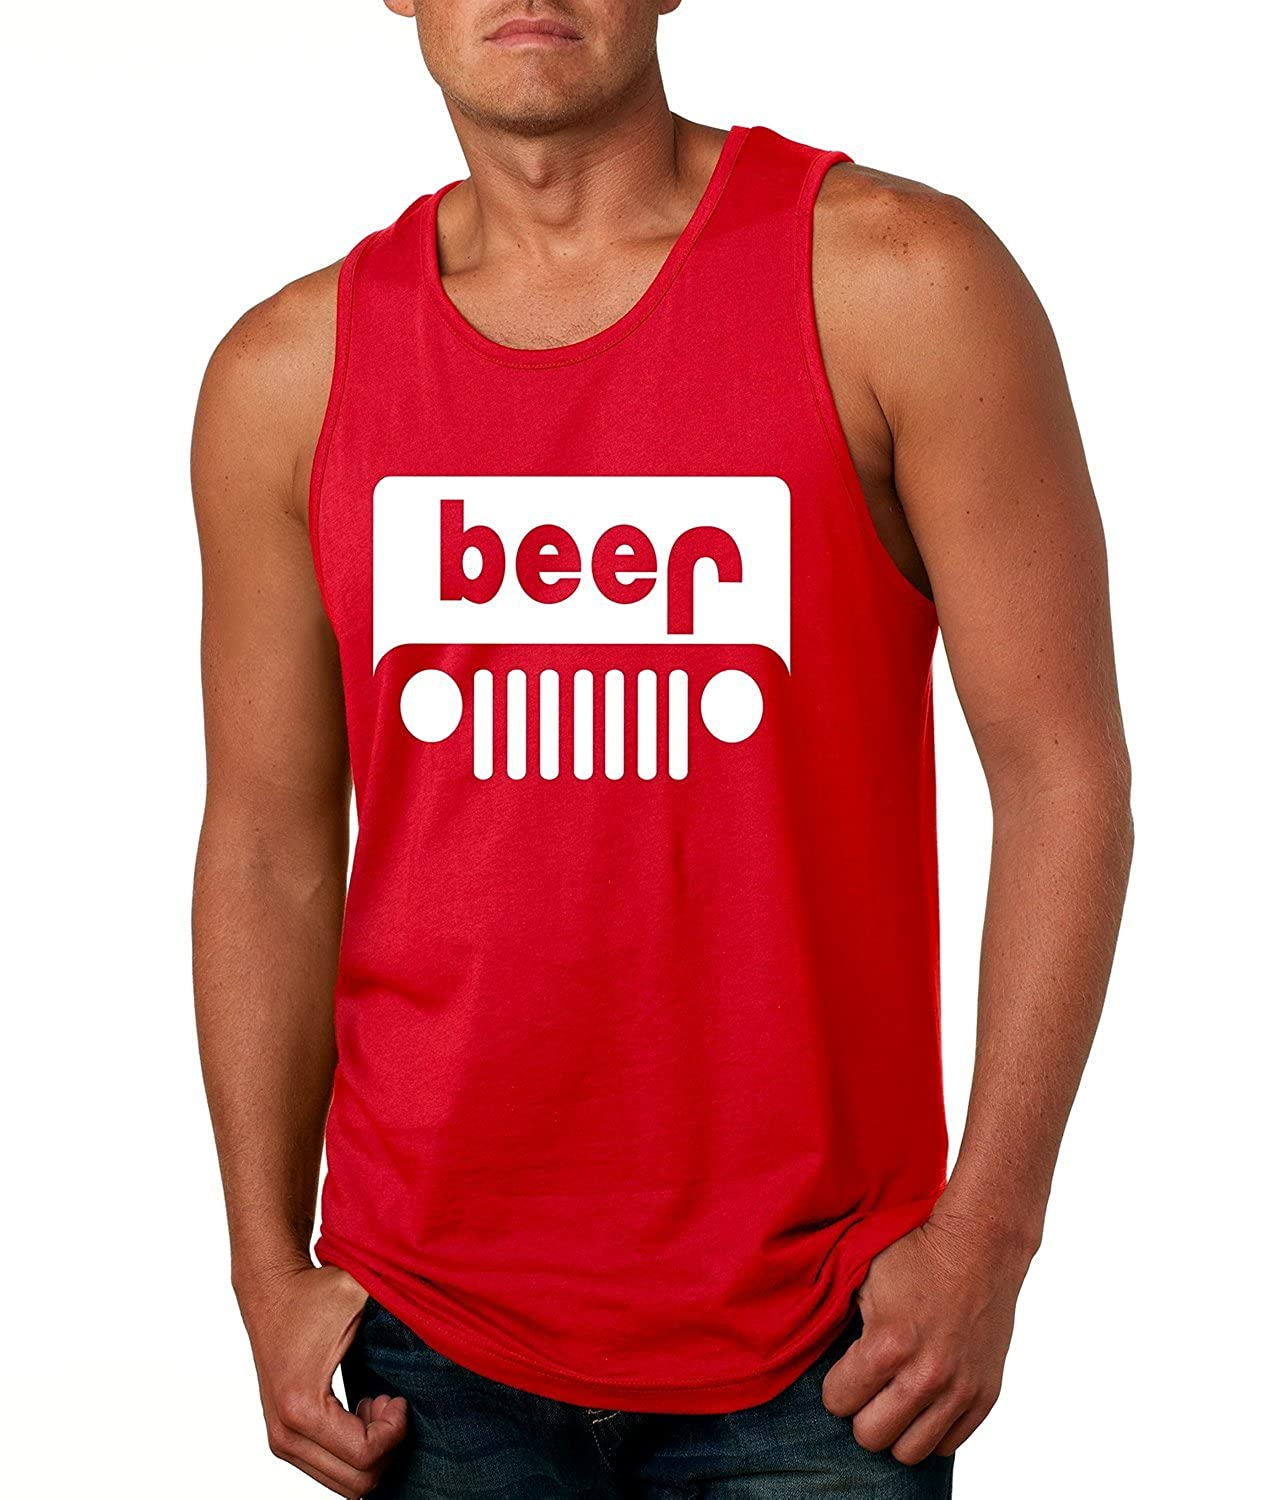 Allntrends Men's Tank Top Beer Jeep Funny Drinking Shirt